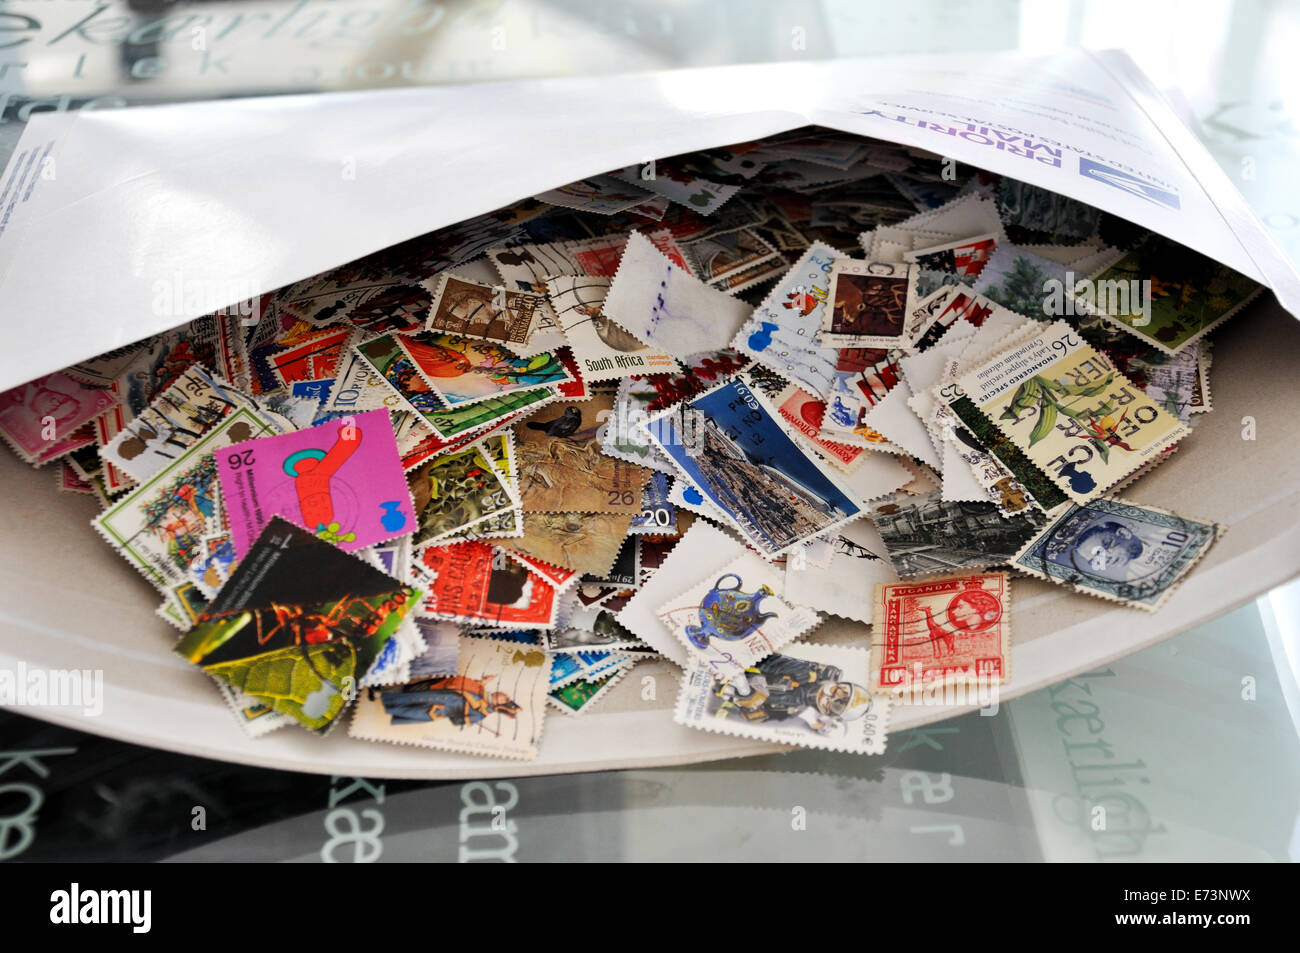 Envelope full of used postage stamps - Stock Image